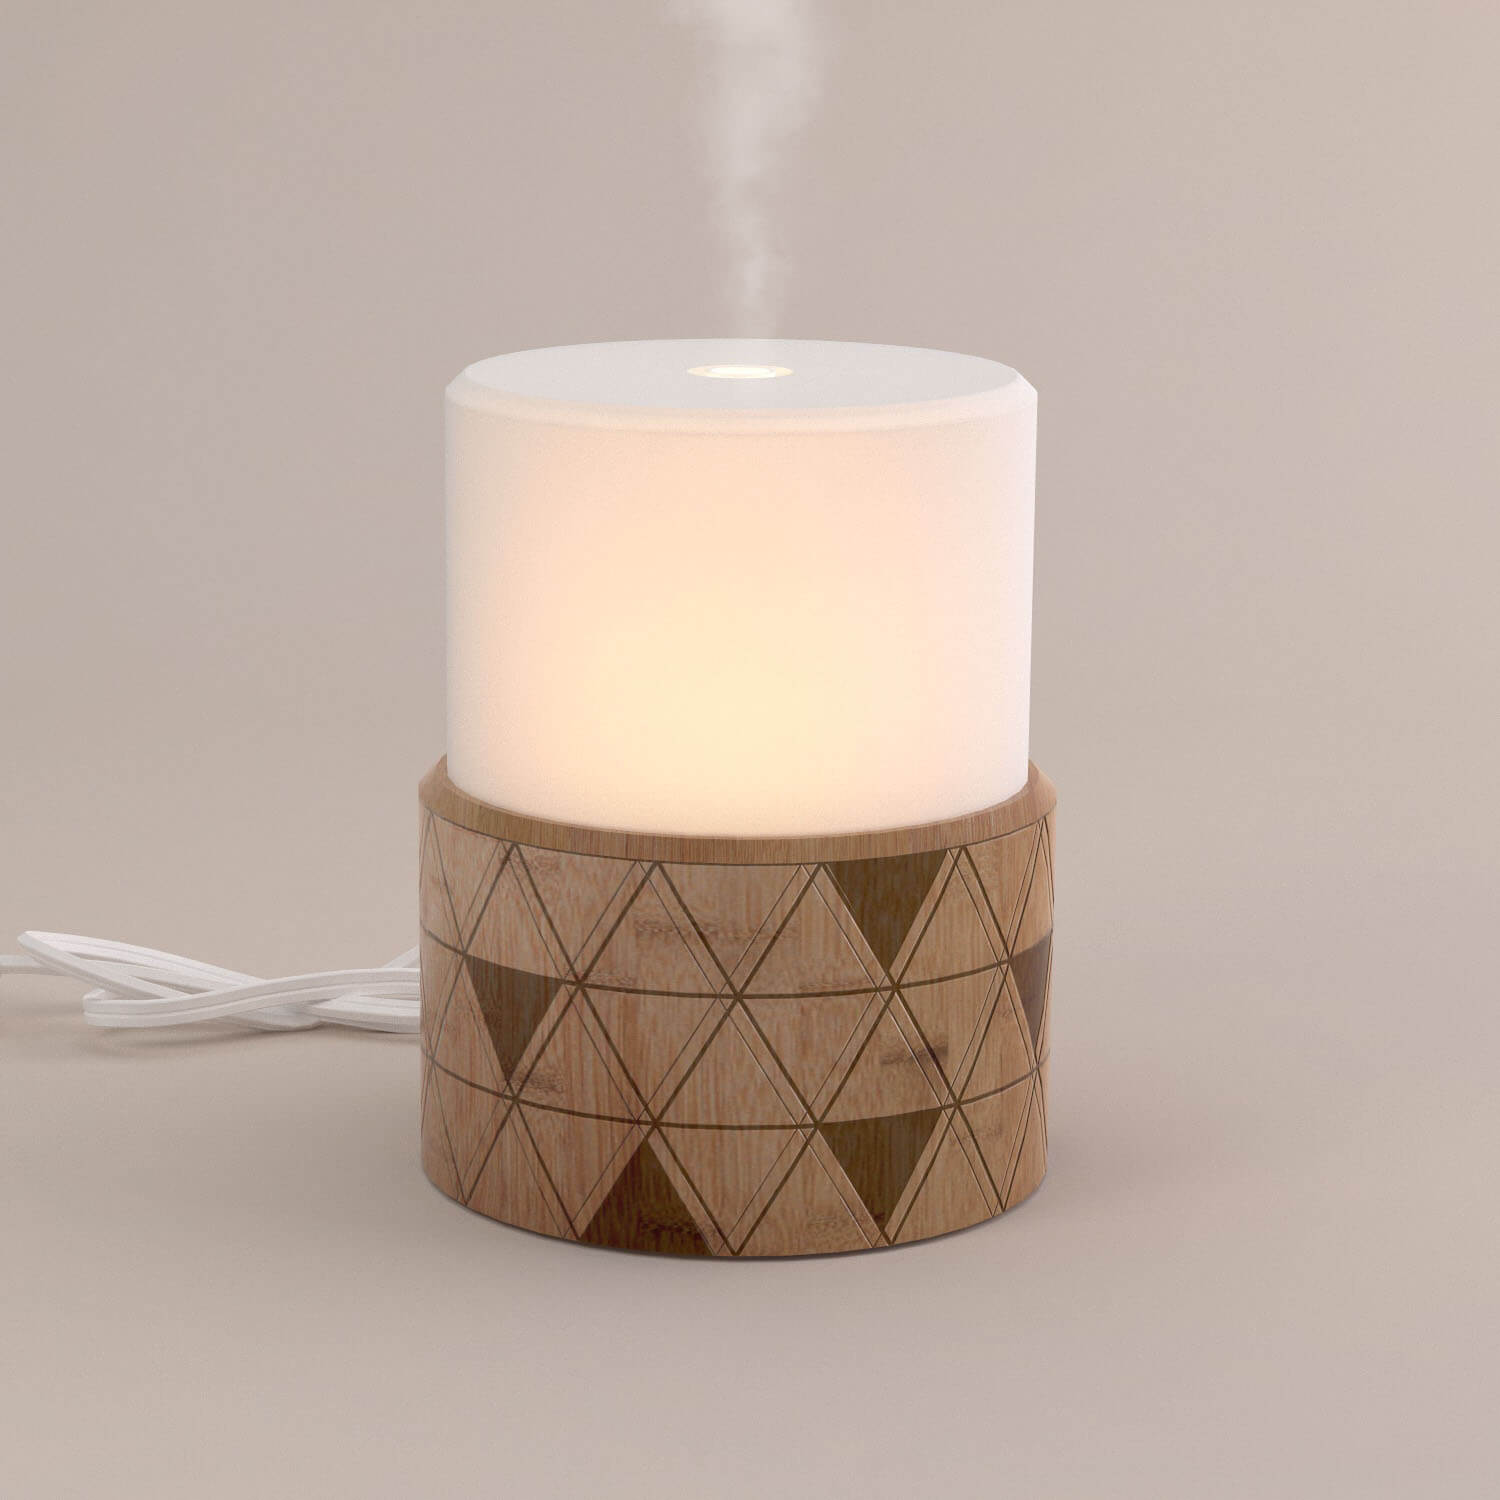 New product 120ml ceramic aroma diffuser GLEA2172C-Z-1